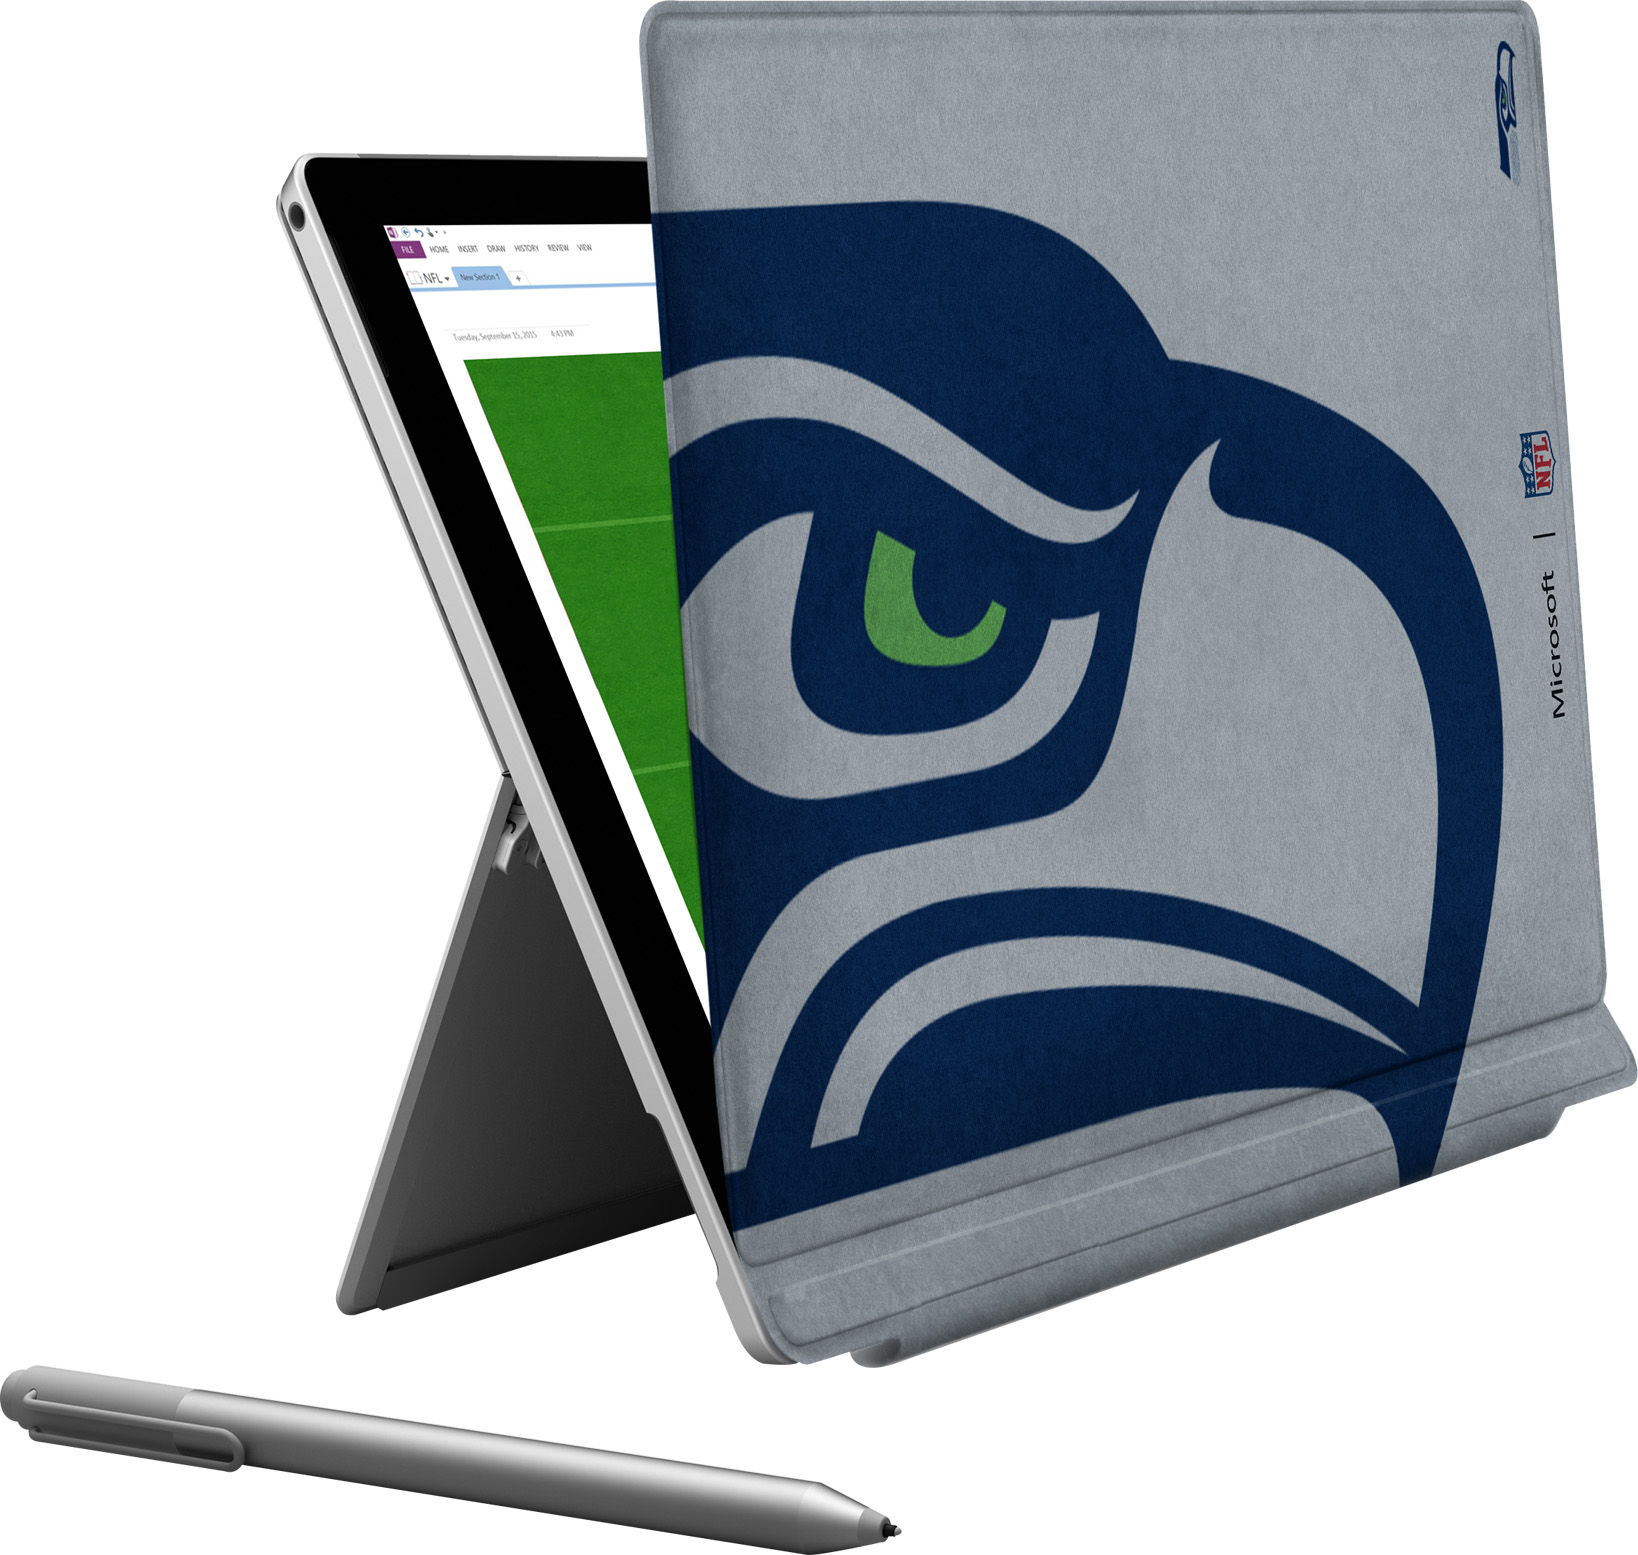 Microsoft Surface Pro 4 Seattle Seahawks Type Cover